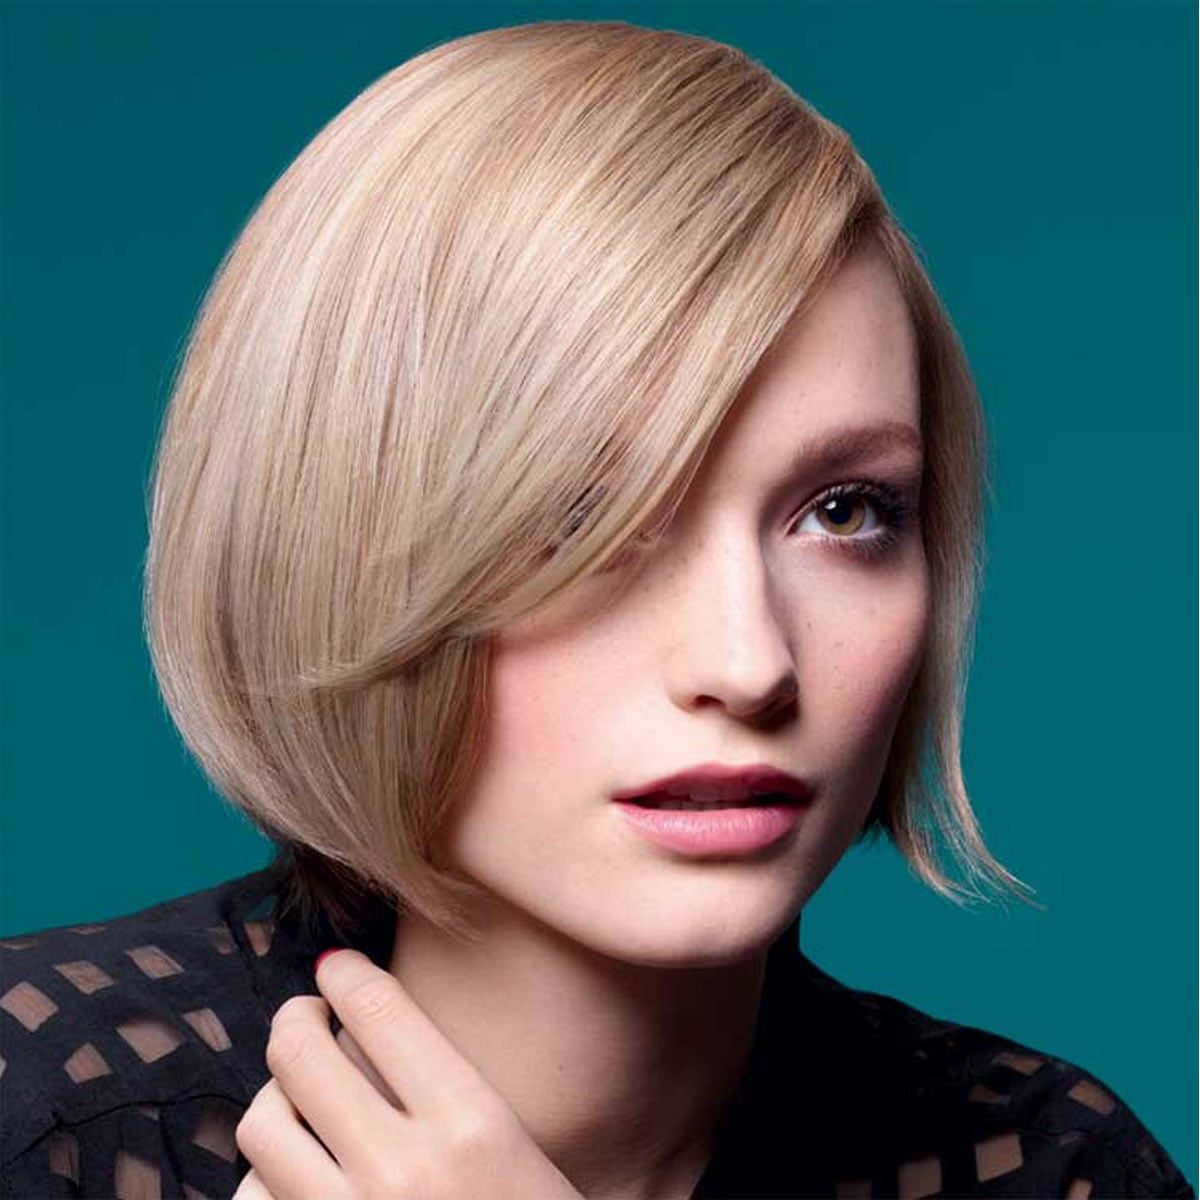 The Best 30 Short Bob Haircuts  2018 Short Hairstyles for Women  Page 5  HAIRSTYLES